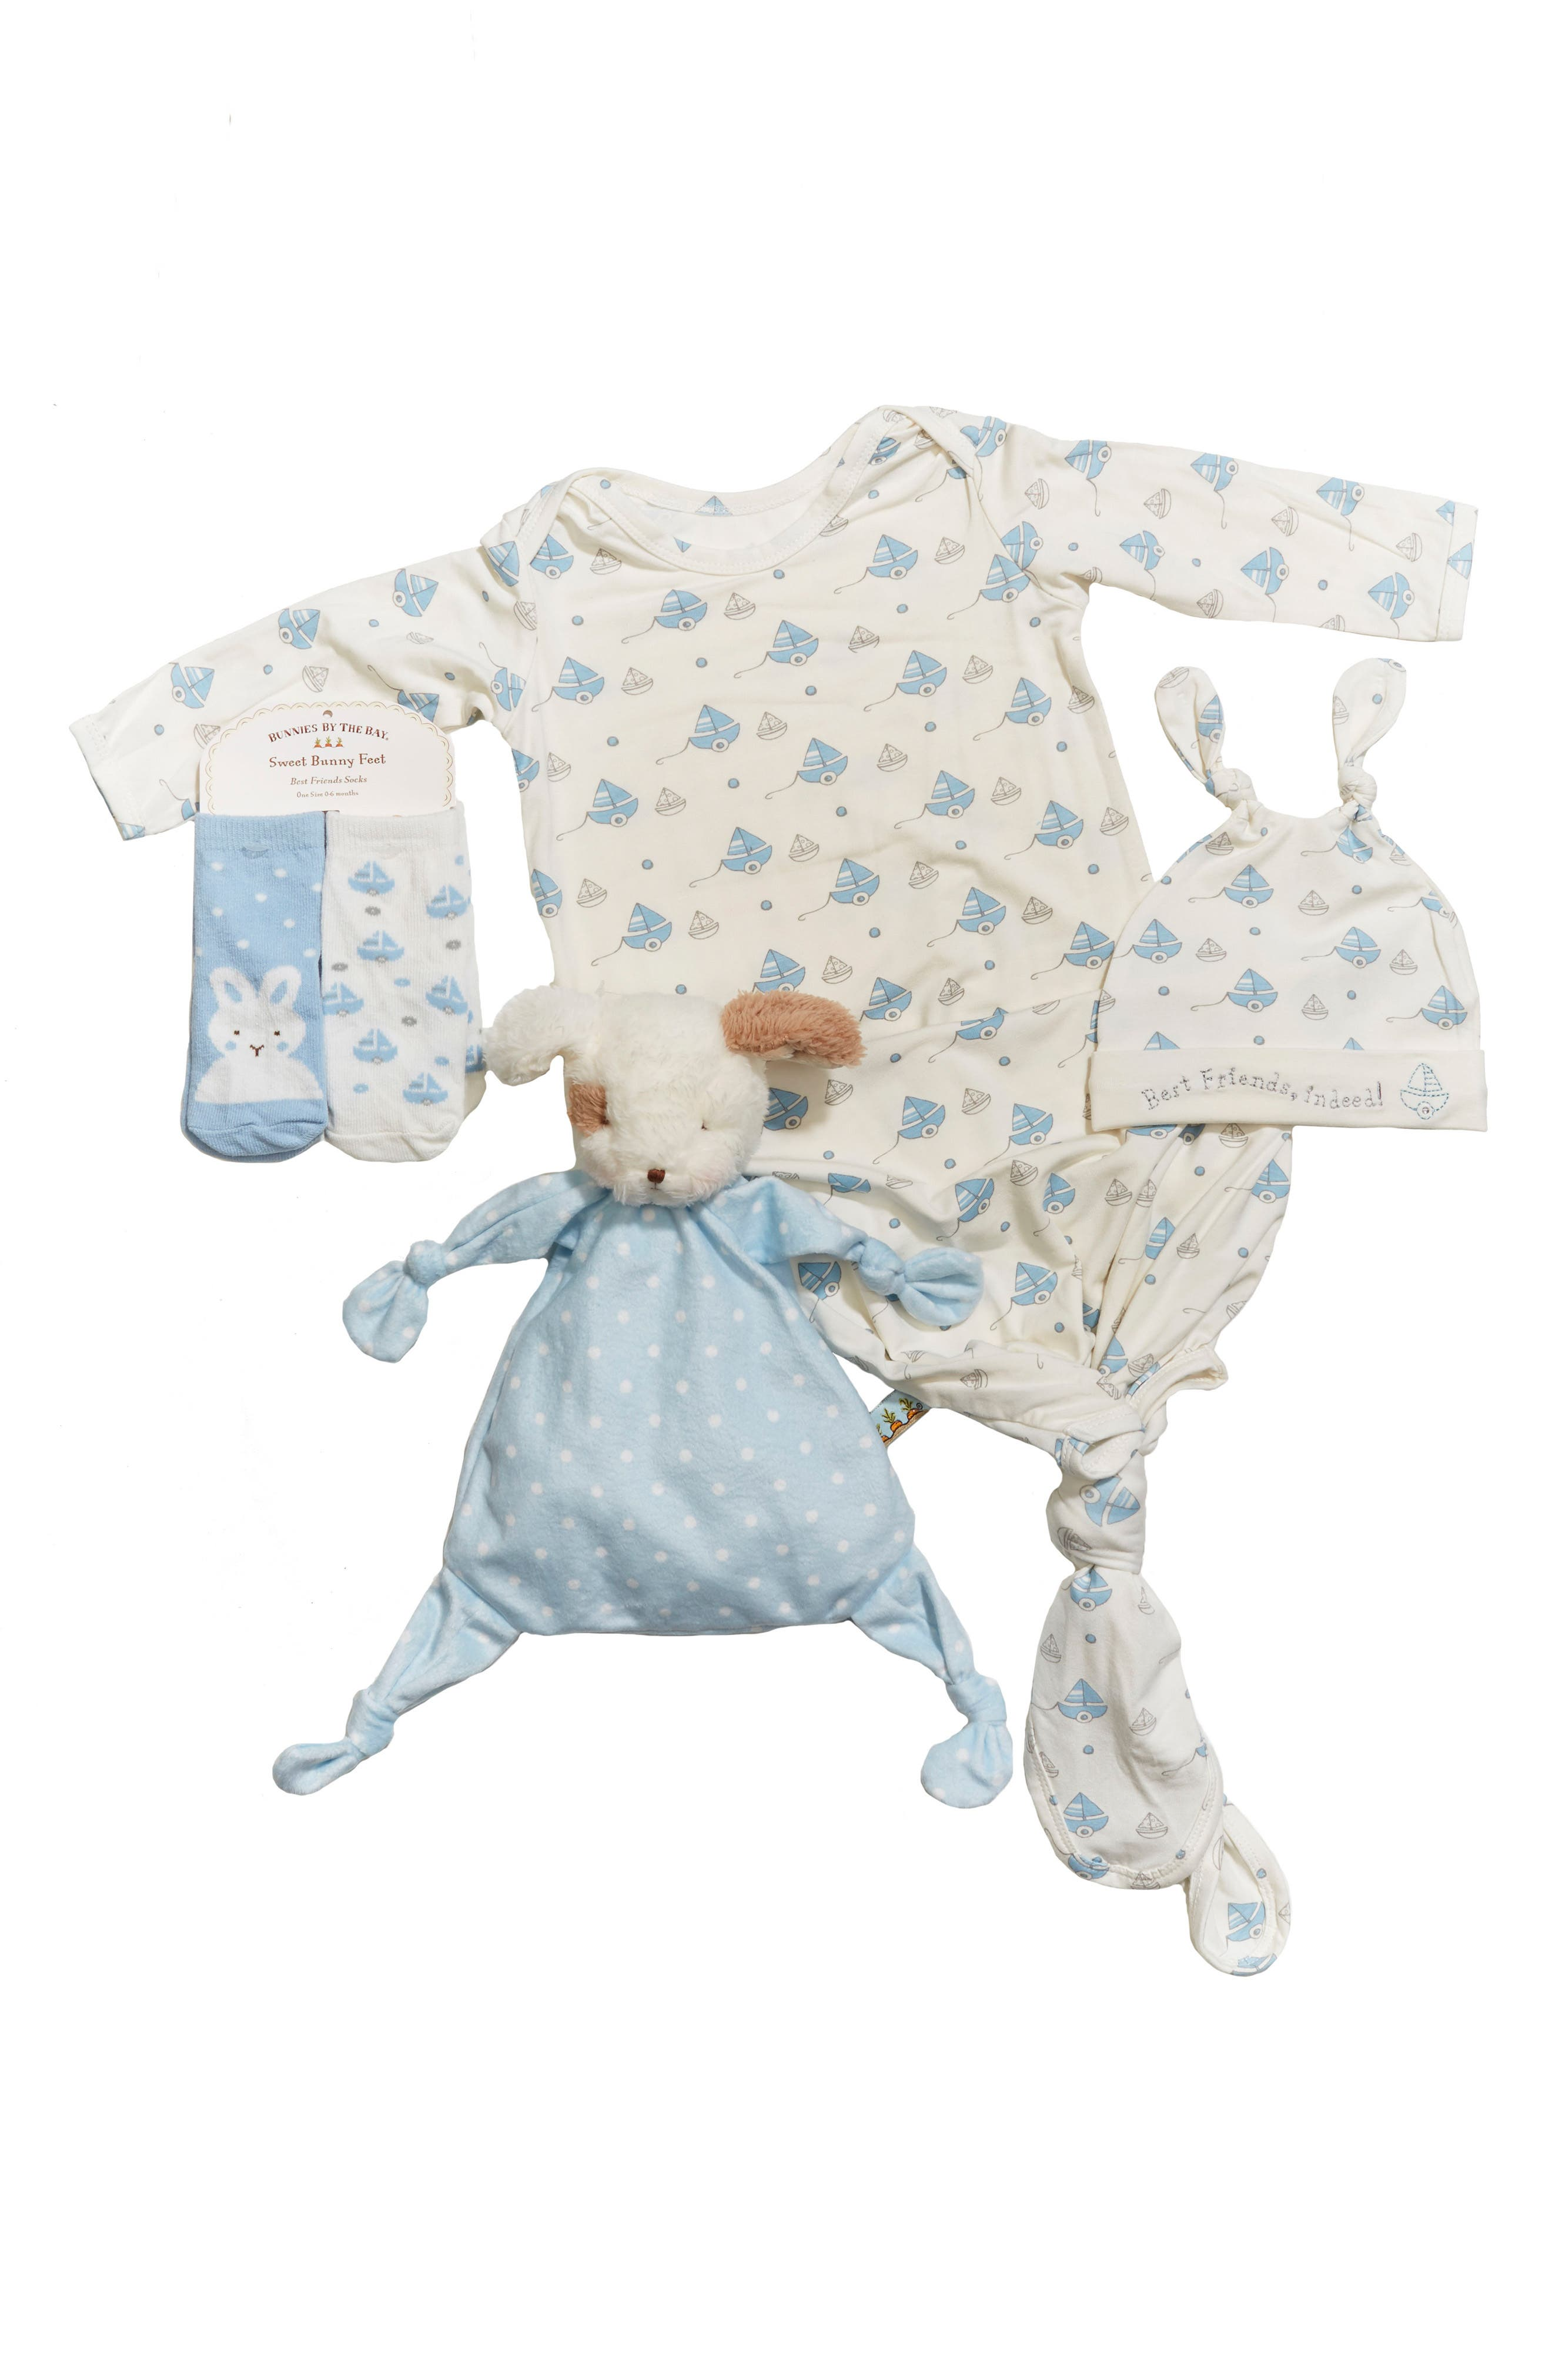 Alternate Image 1 Selected - Bunnies By The Bay Gown, Hat, Socks & Lovey Set (Baby Boys)